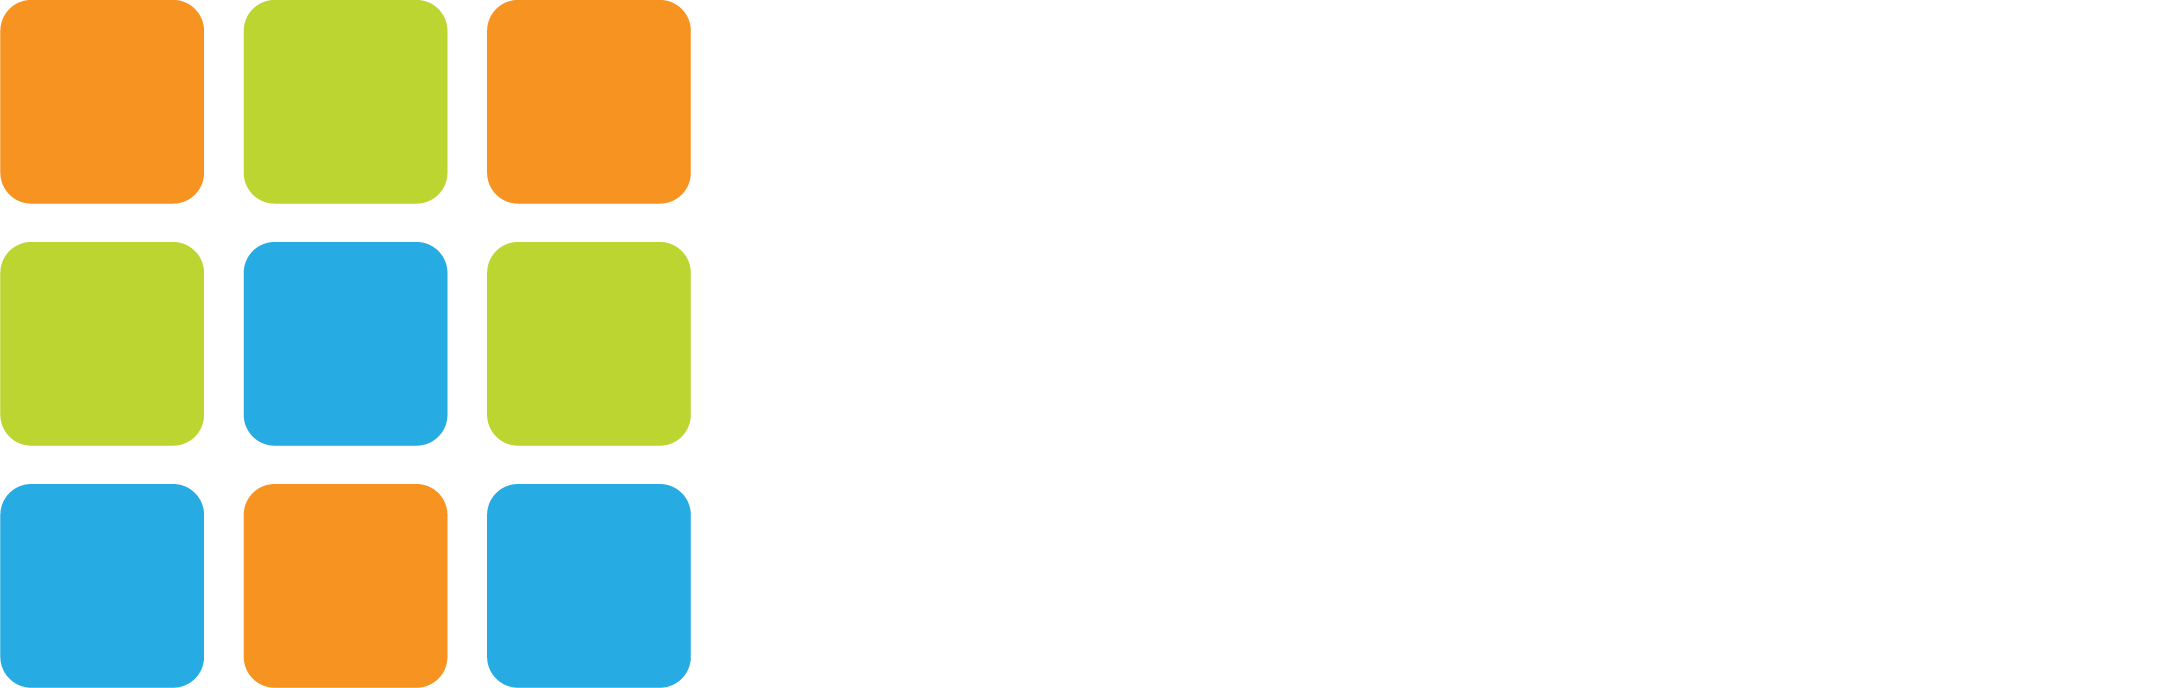 The Goodness Company